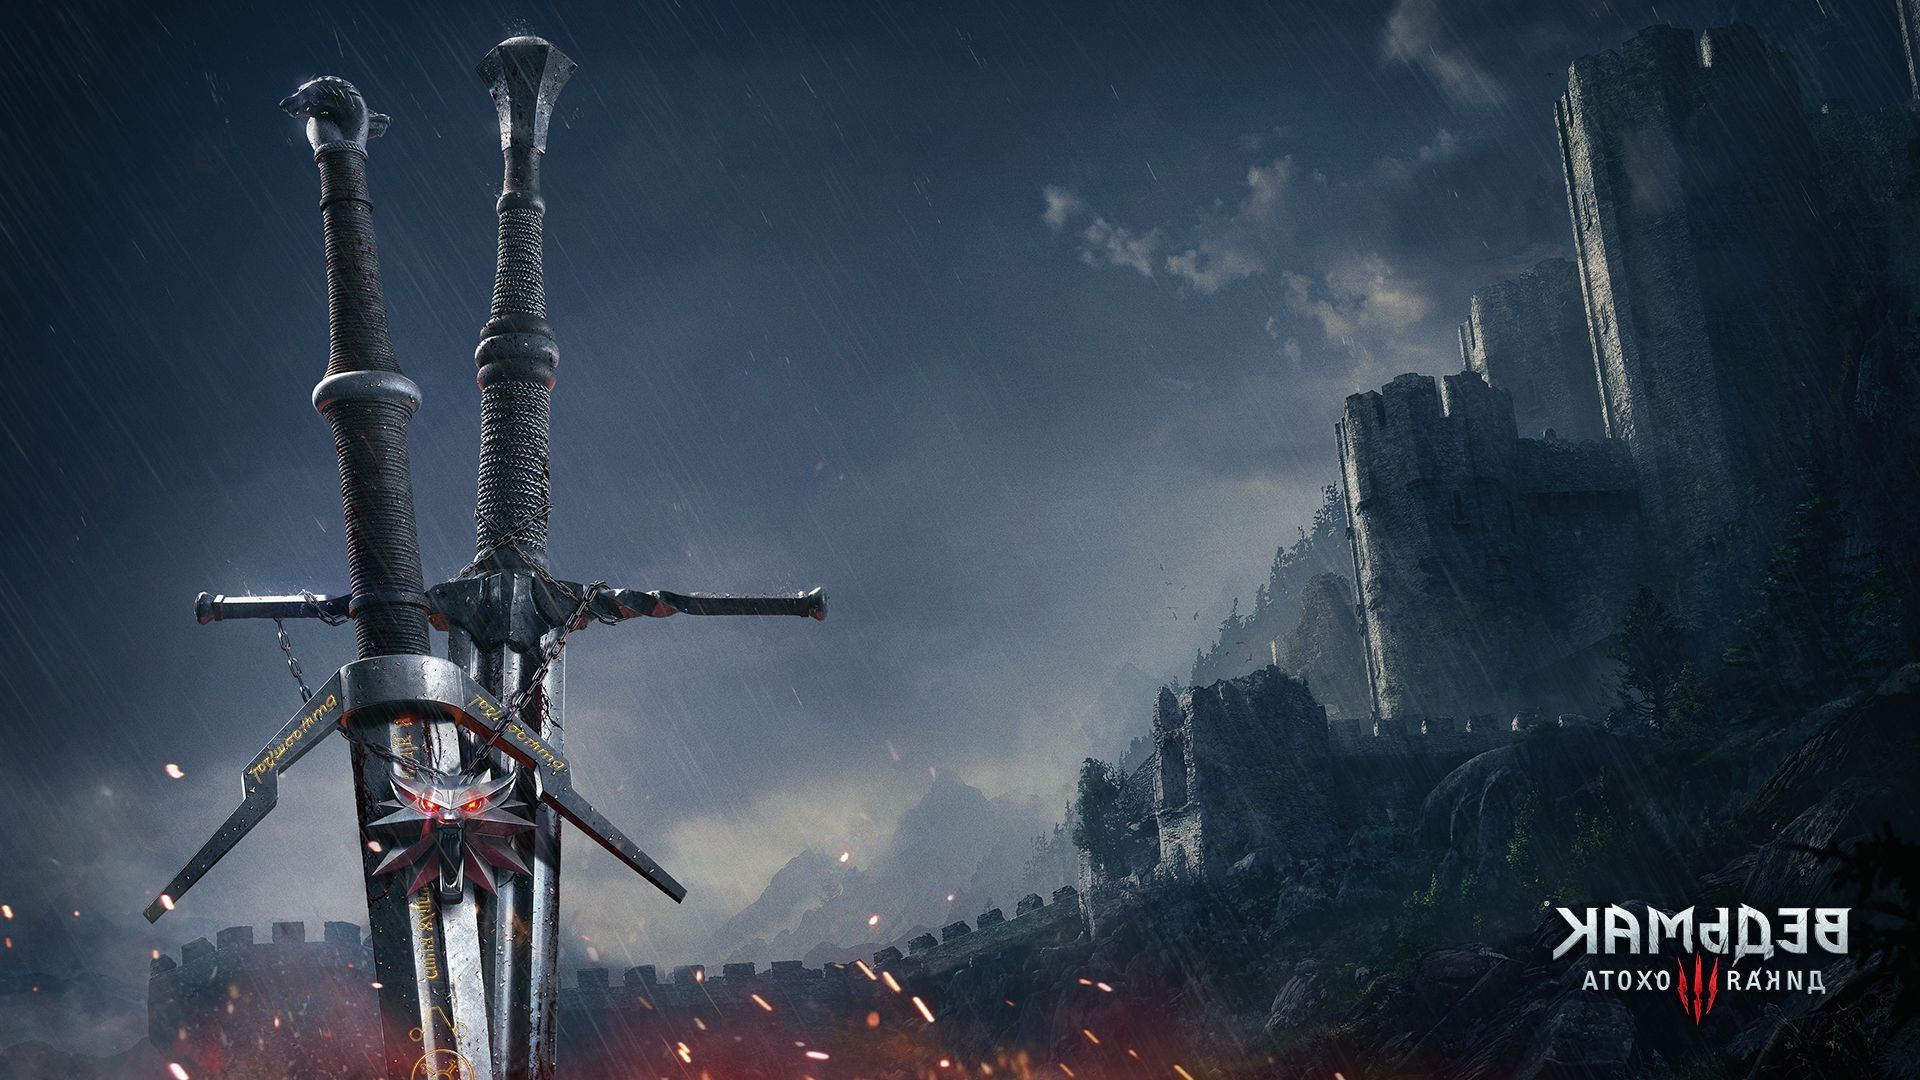 2048x1152 the witcher 3 sword 2048x1152 resolution hd 4k